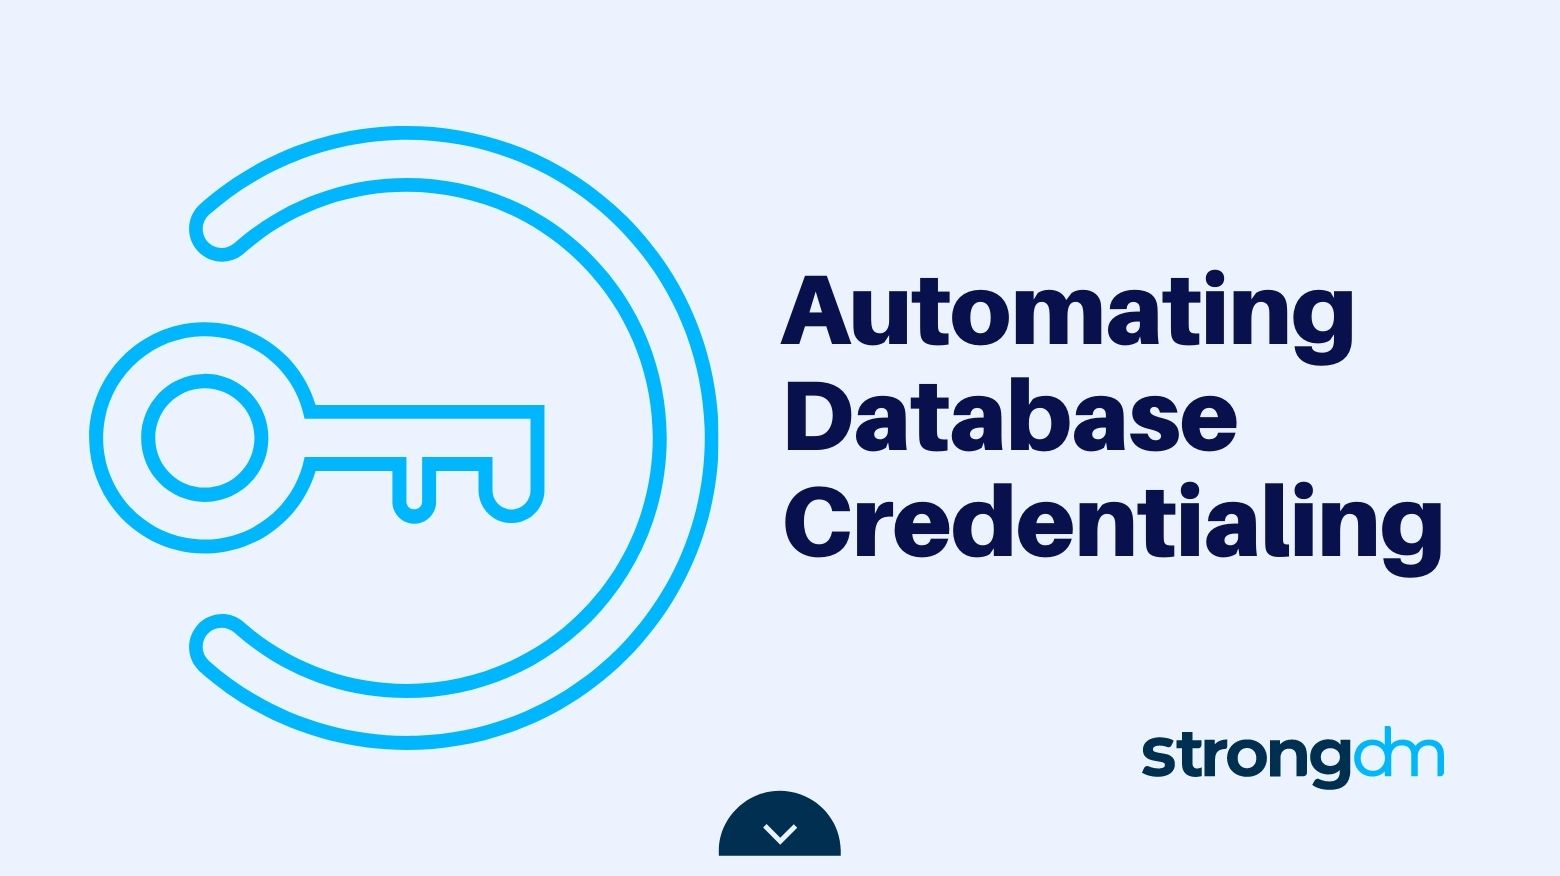 Automating Database Credentialing